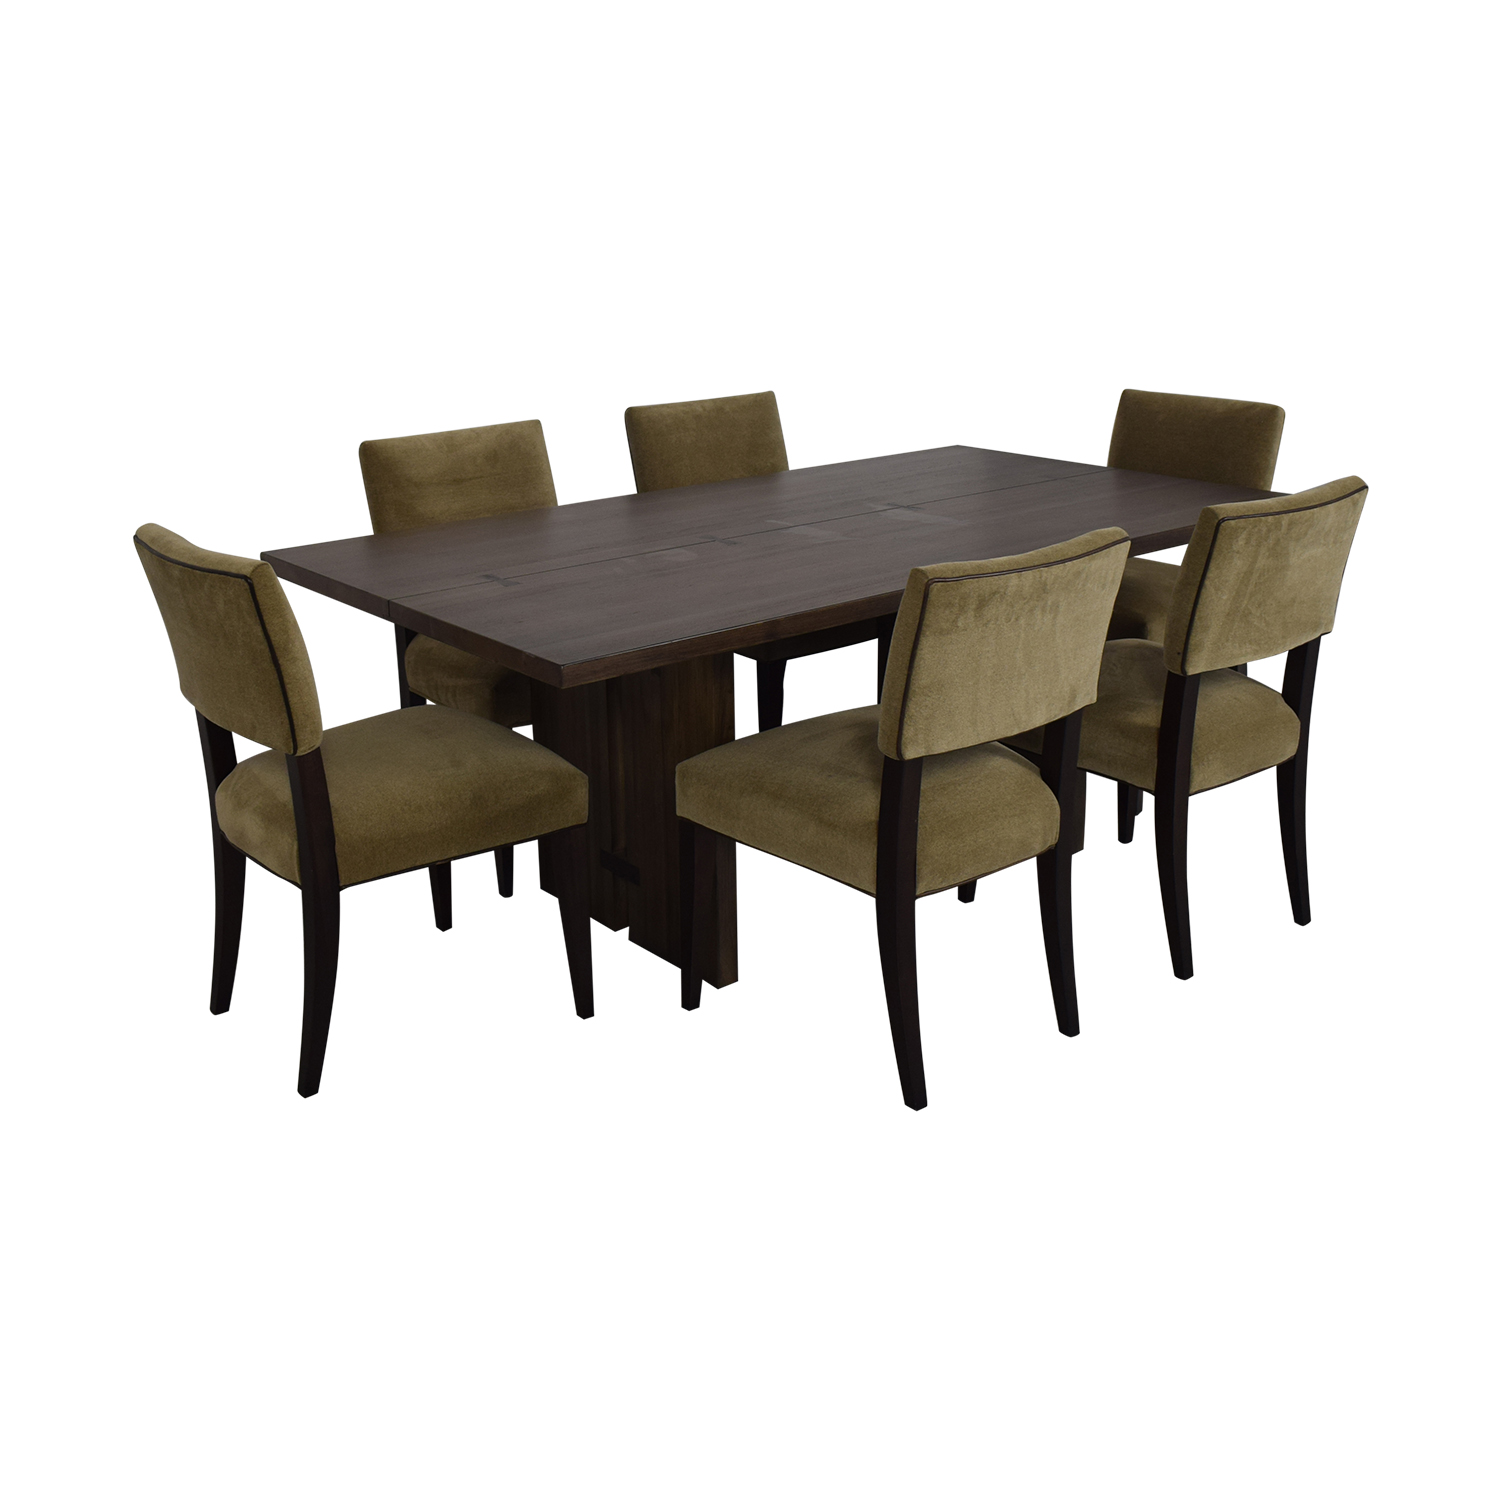 Crate & Barrel Crate & Barrel Monarch Dining Table and Cody Dining Chairs coupon